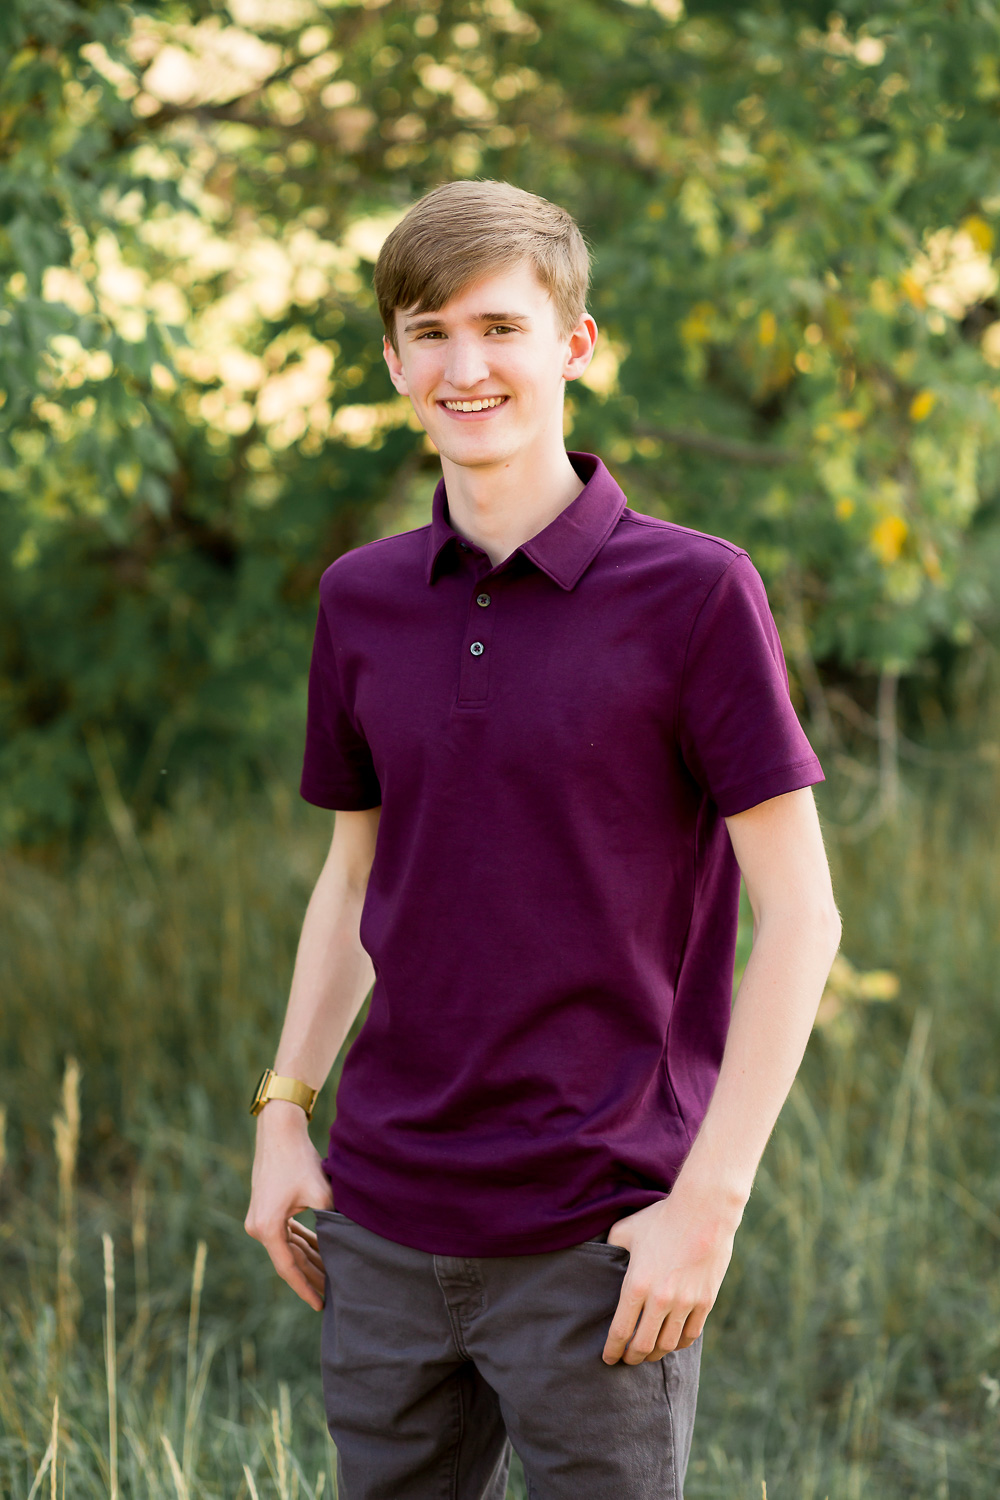 denver_senior_portrait_photographer_kathleen_bracken_photography-13.jpg